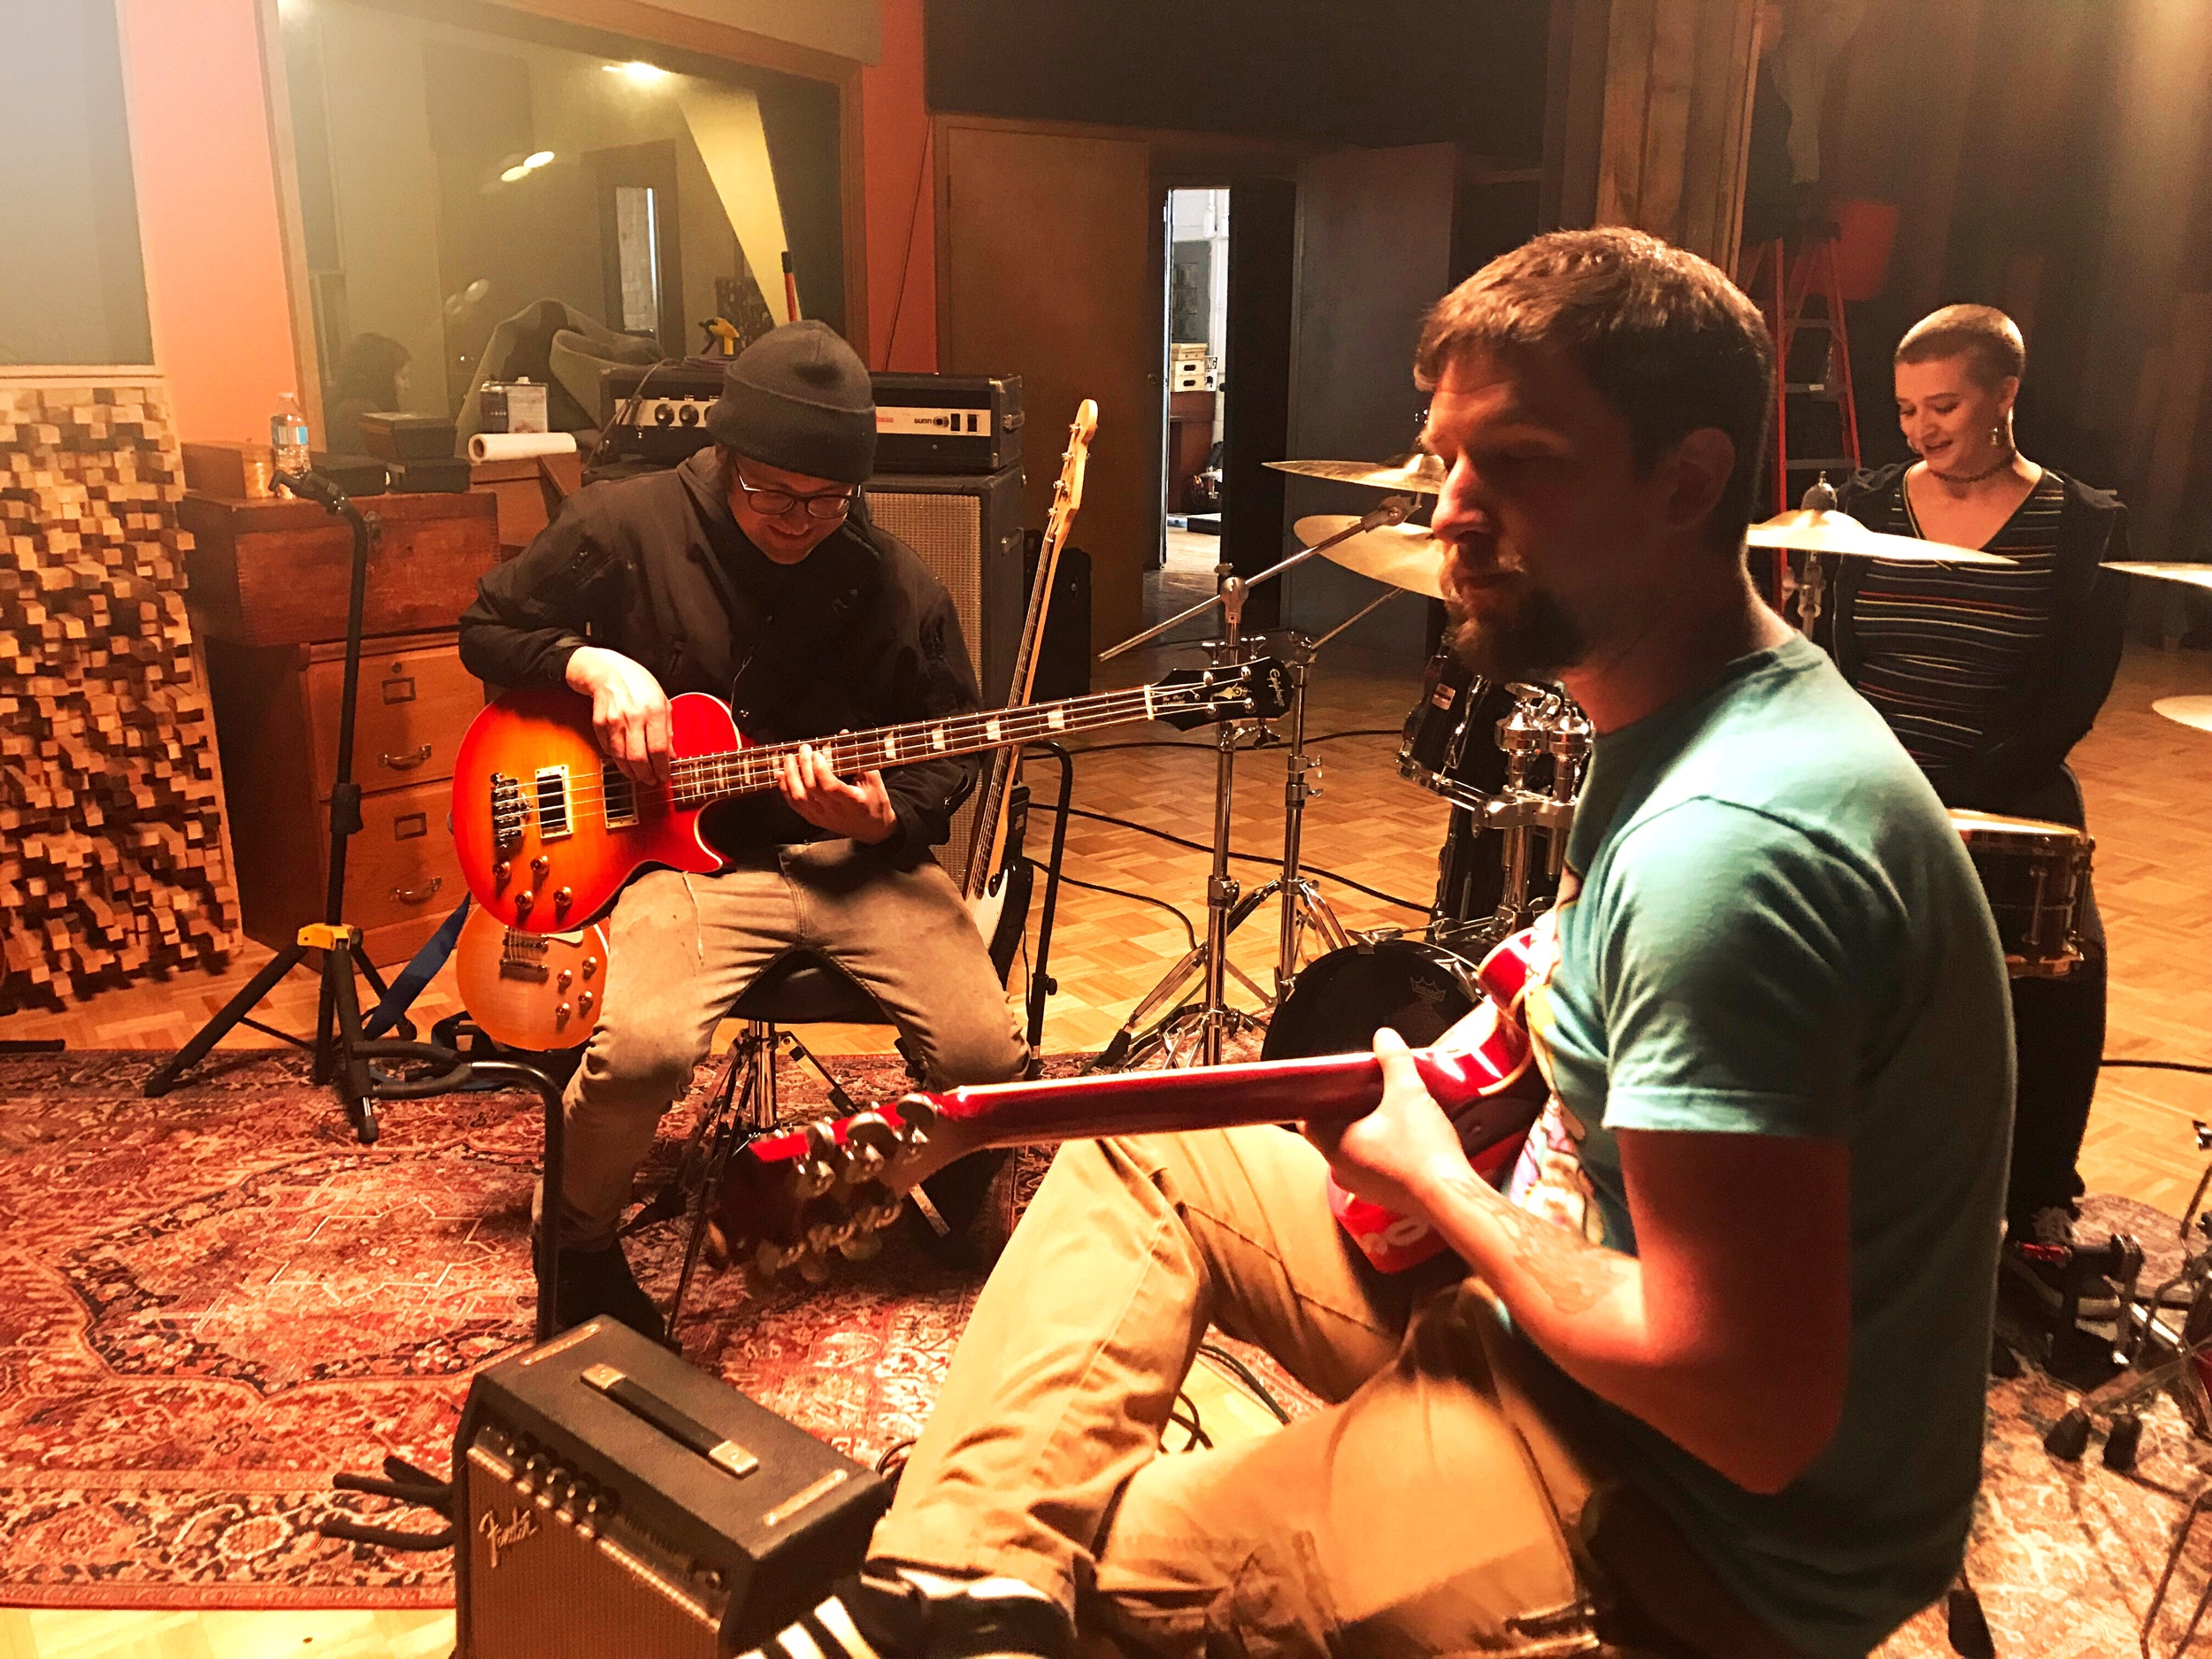 Local Cleveland creatives tuning & testing musical instruments used for filming The Garage featured in downtown Cleveland's Rock & Roll Hall of Fame